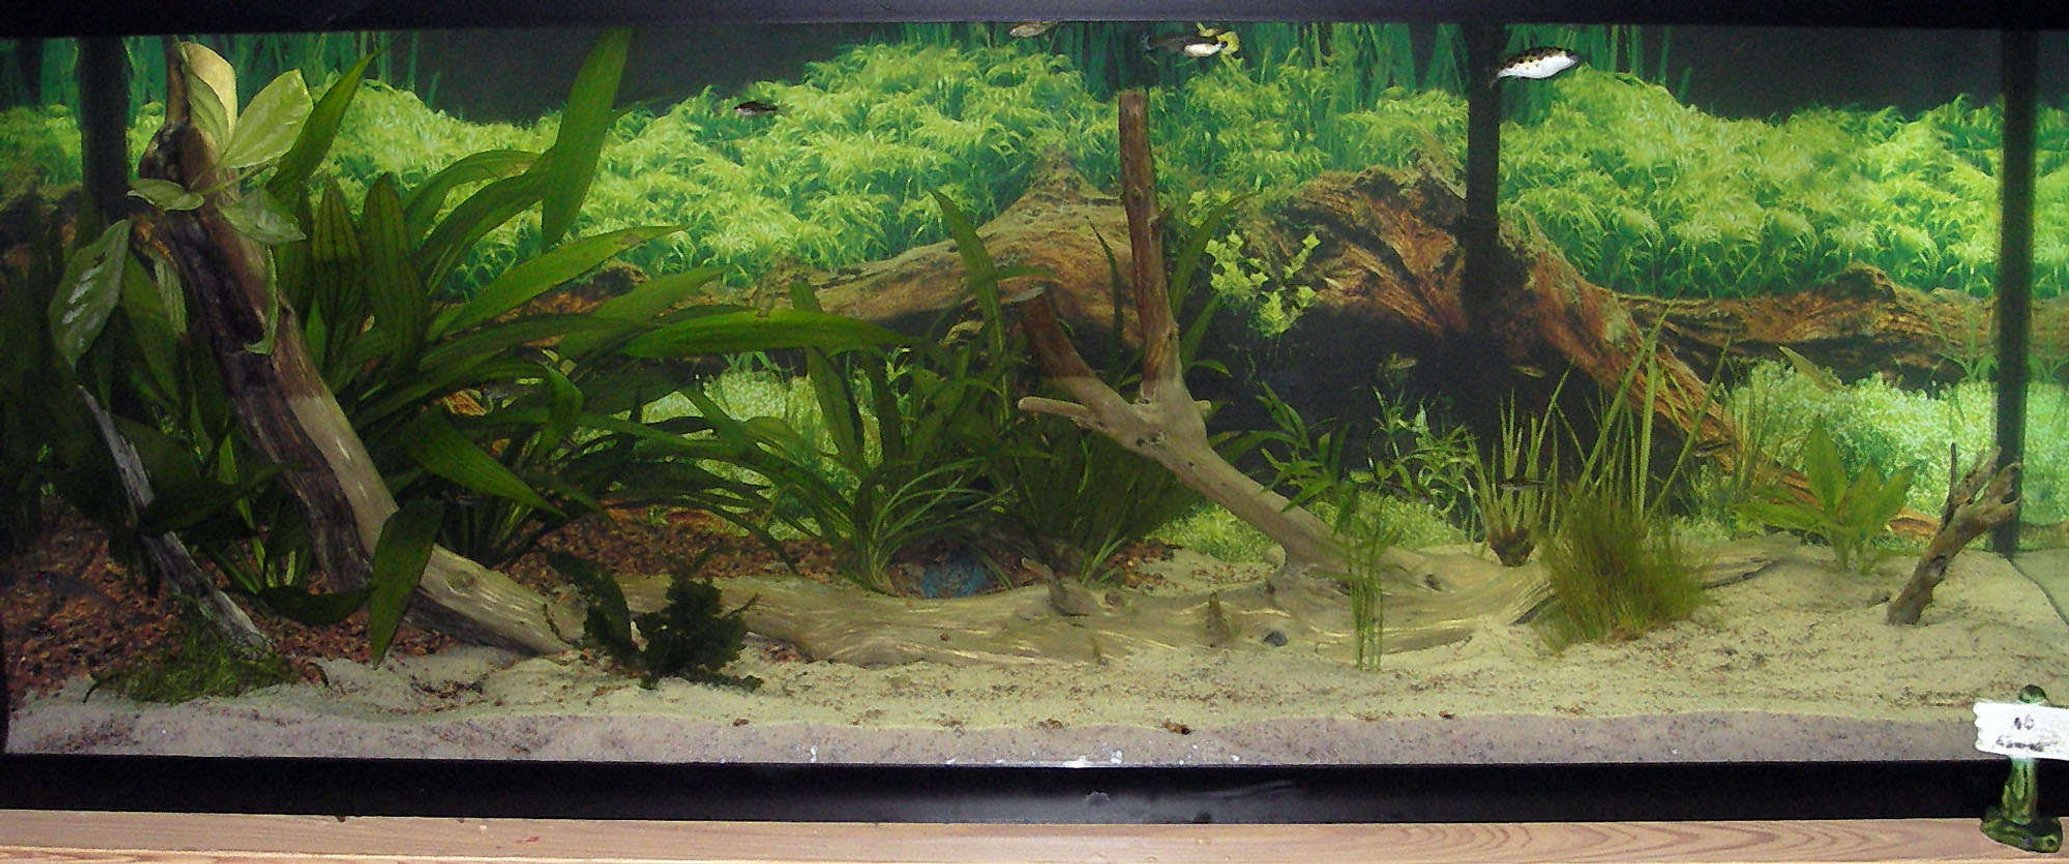 fish tank picture - Older pic.